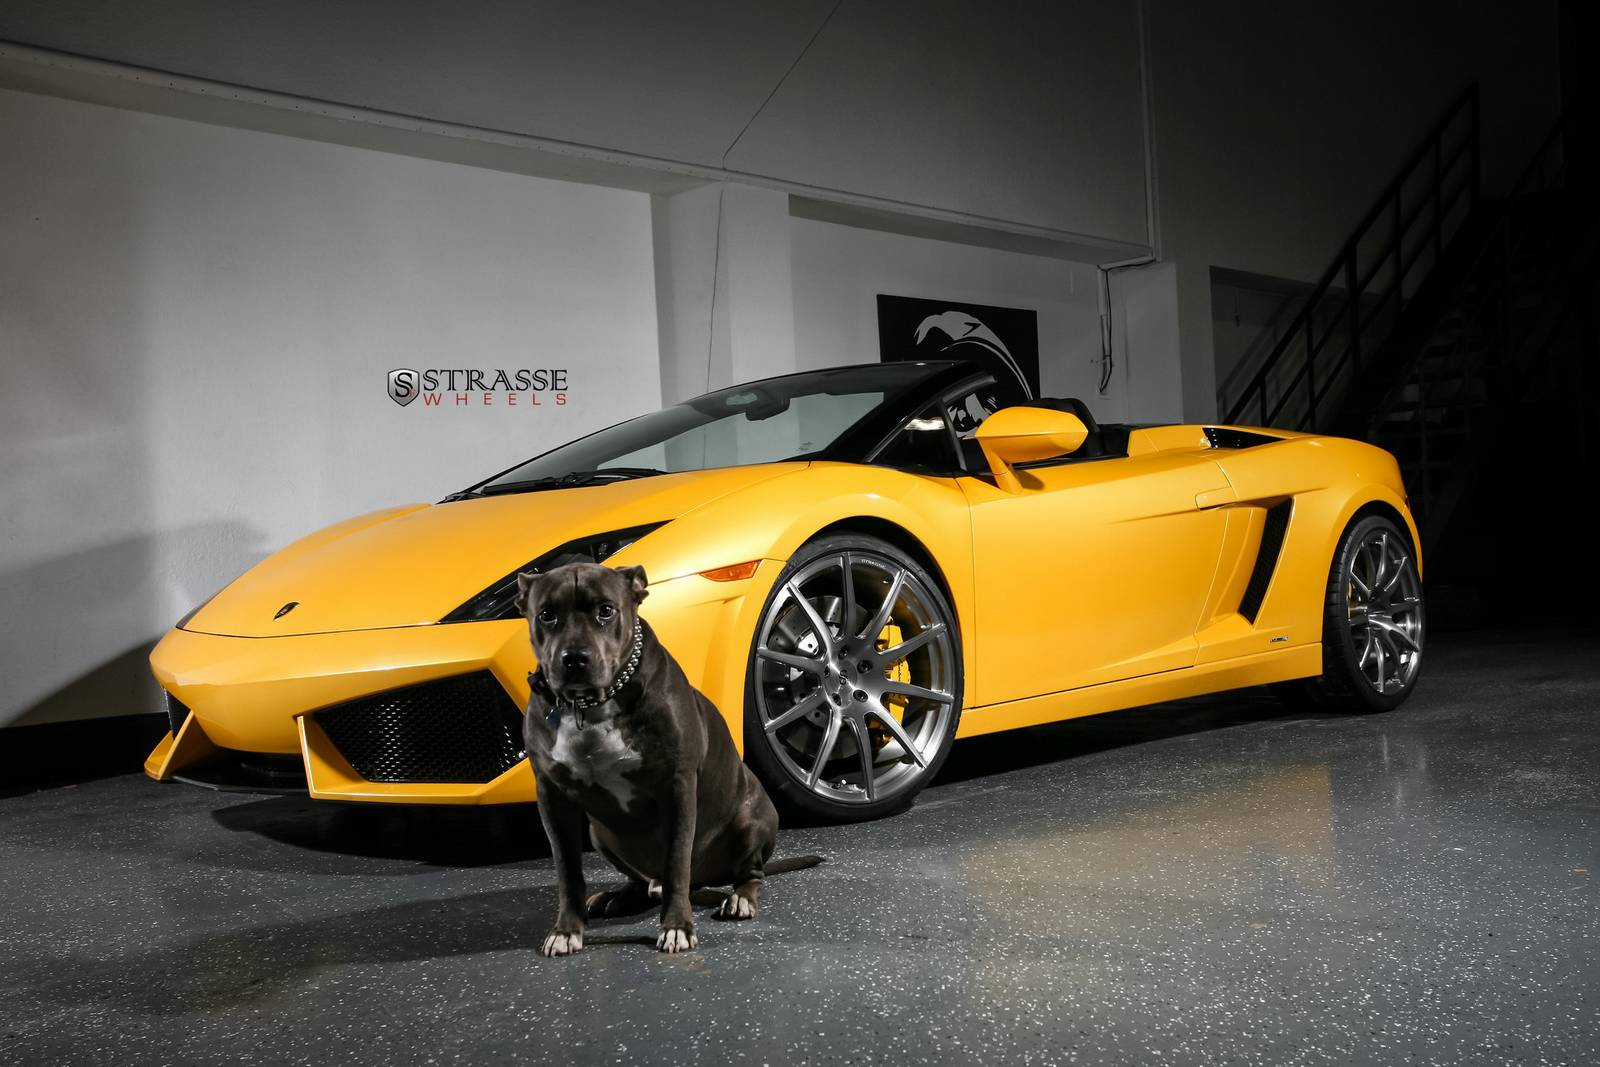 Giallo Midas Lamborghini Gallardo Spyder With Strasse Wheels Gtspirit